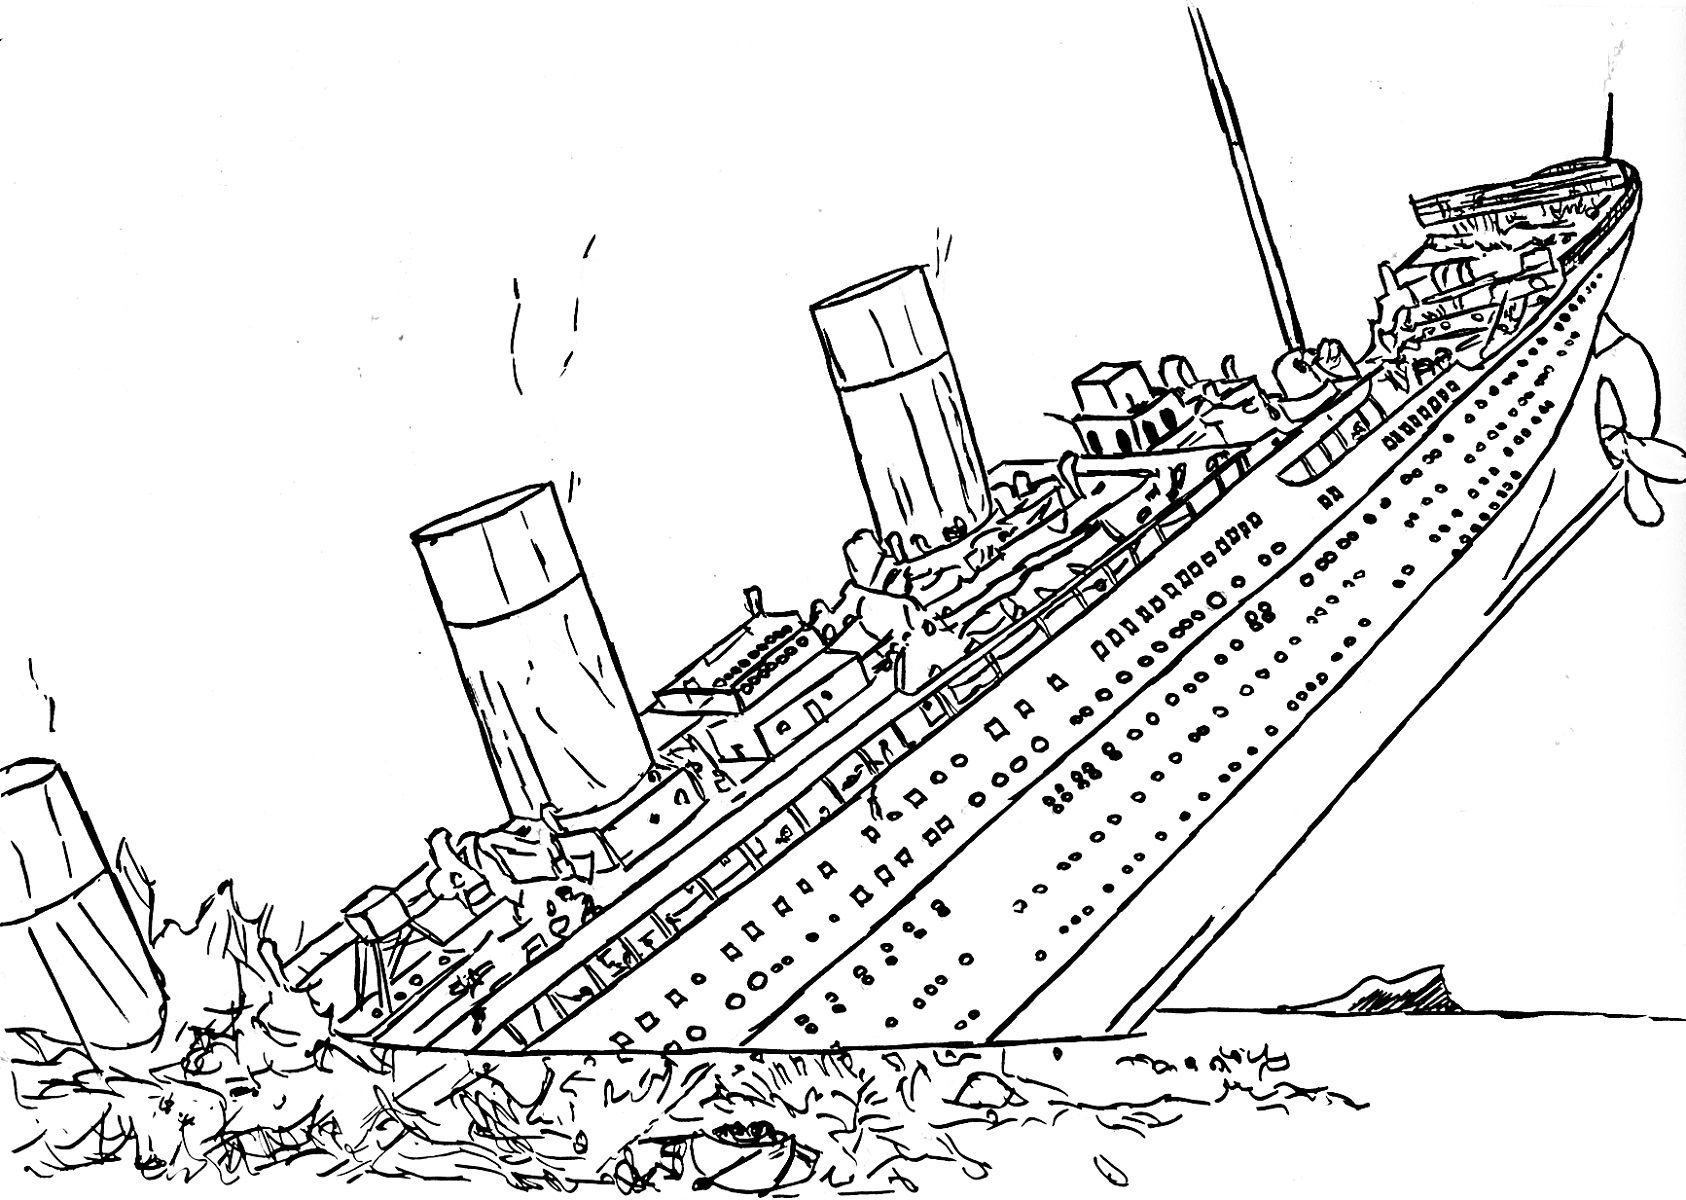 Titanic Sinking Coloring Pages Free To Print Educative Printable Coloring Pages Titanic Titanic Sinking